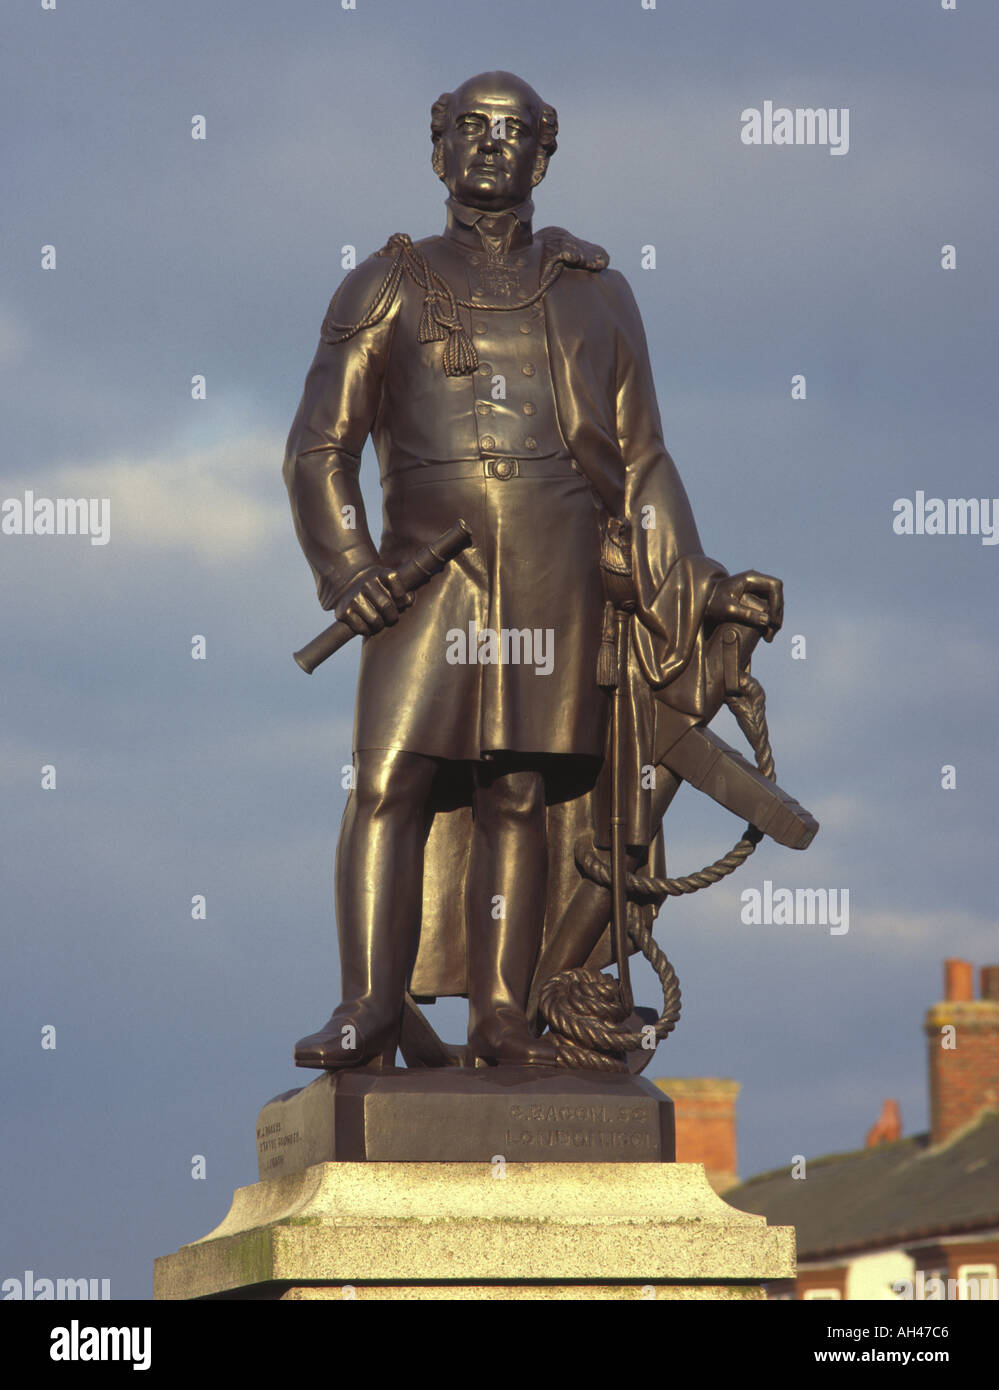 Stature of Sir John Franklin in his birthplace of Spilsby at the foot of the Lincolnshire Wolds UK - Stock Image